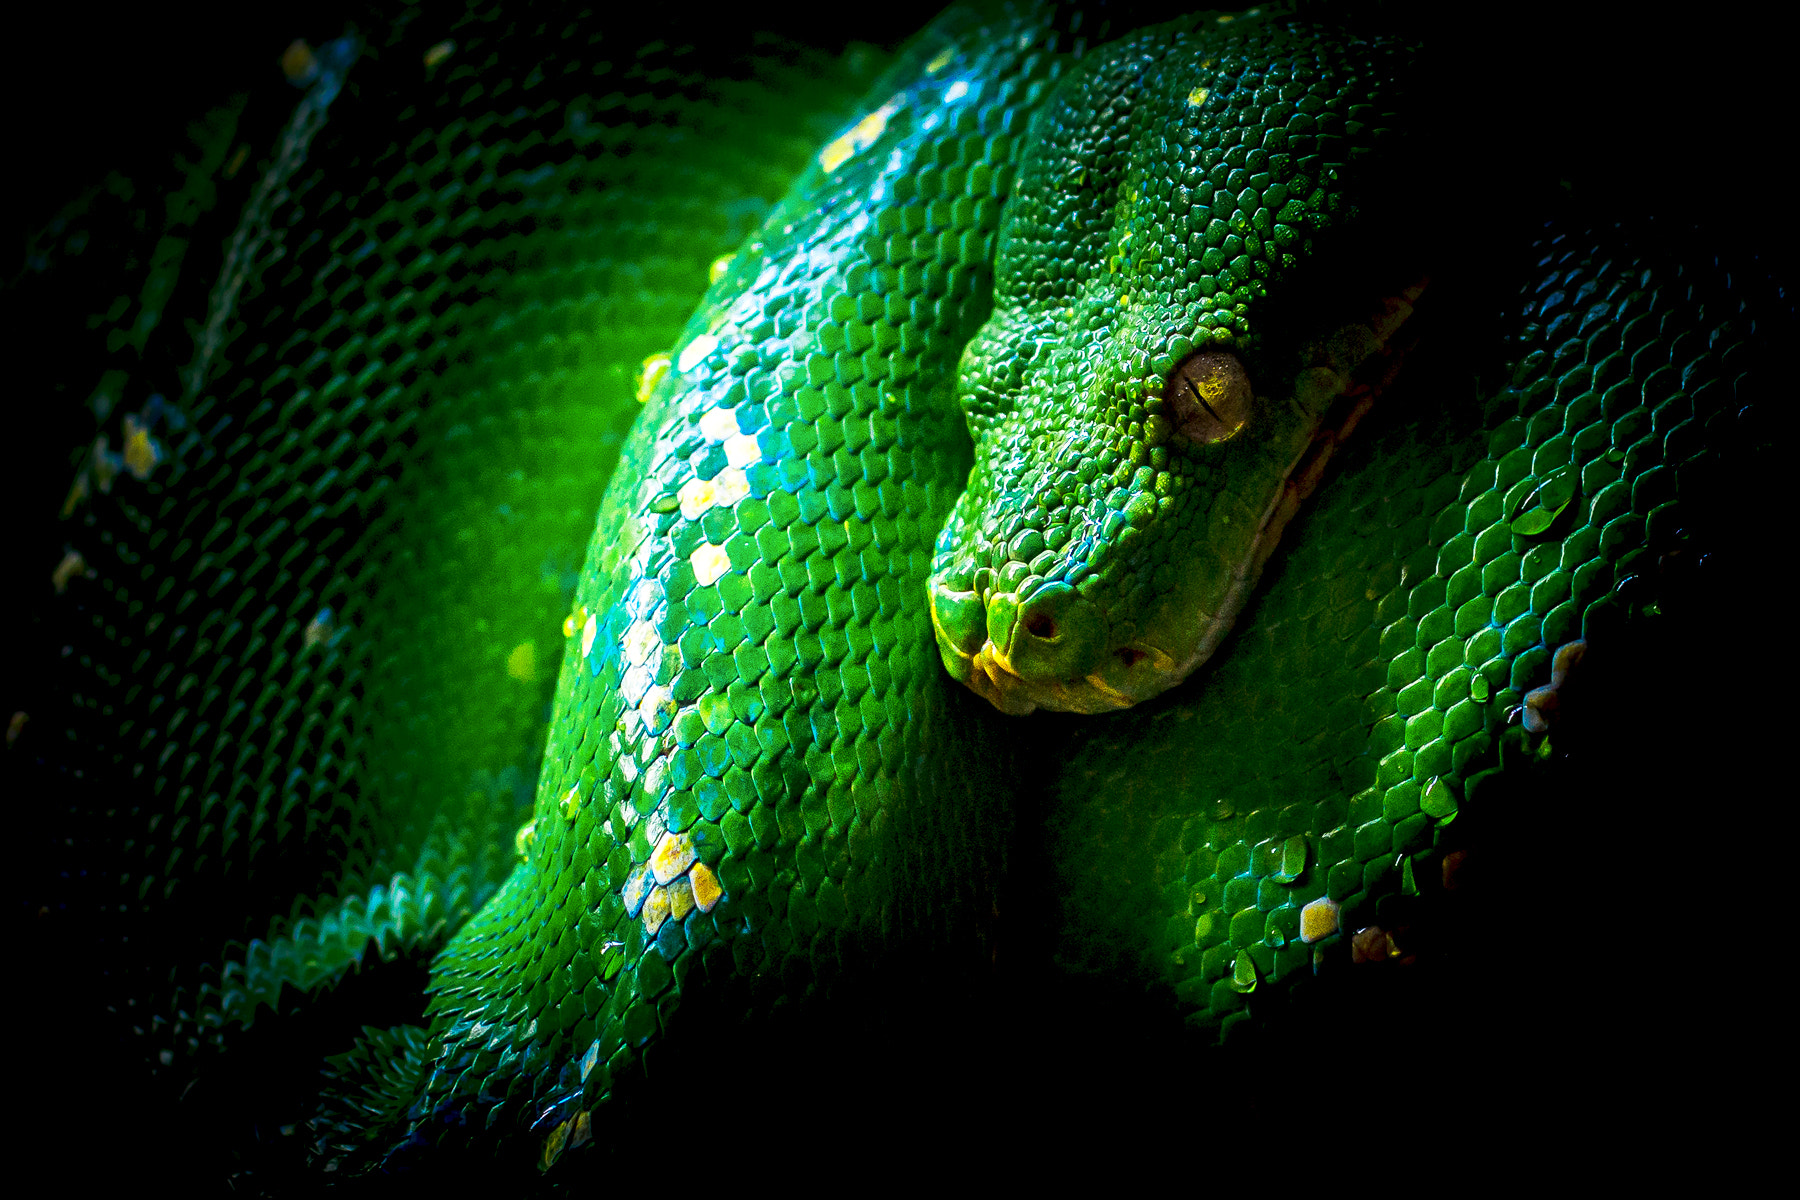 Photograph Green Snake by Donato Romagnuolo on 500px